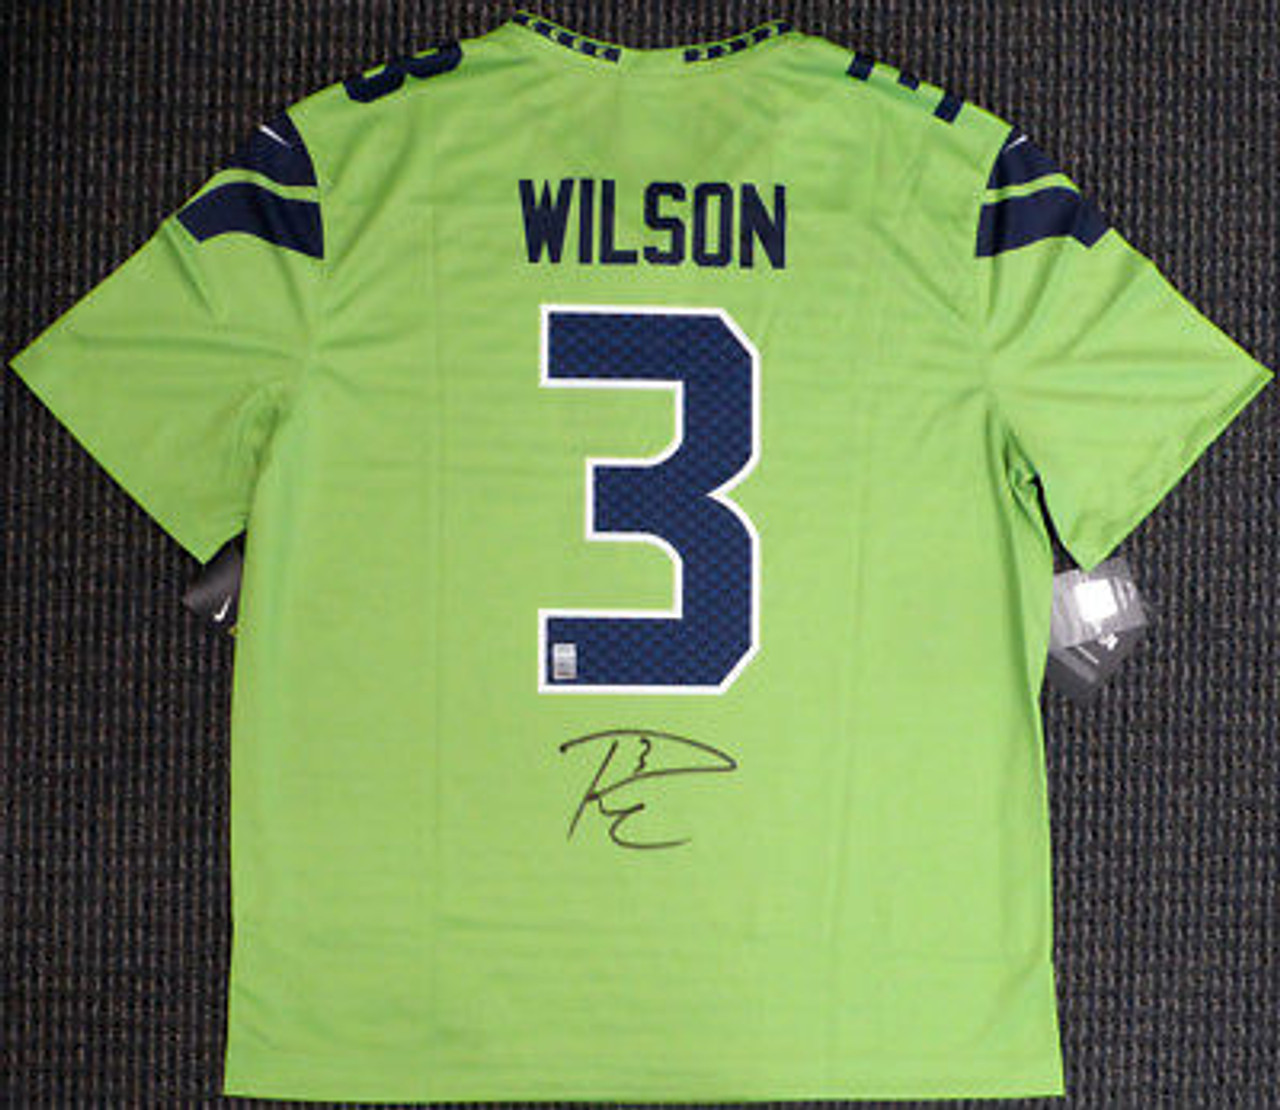 timeless design ed7cc db8b2 Russell Wilson Seahawks Seahawks Autographed Nike Color Rush Football Jersey